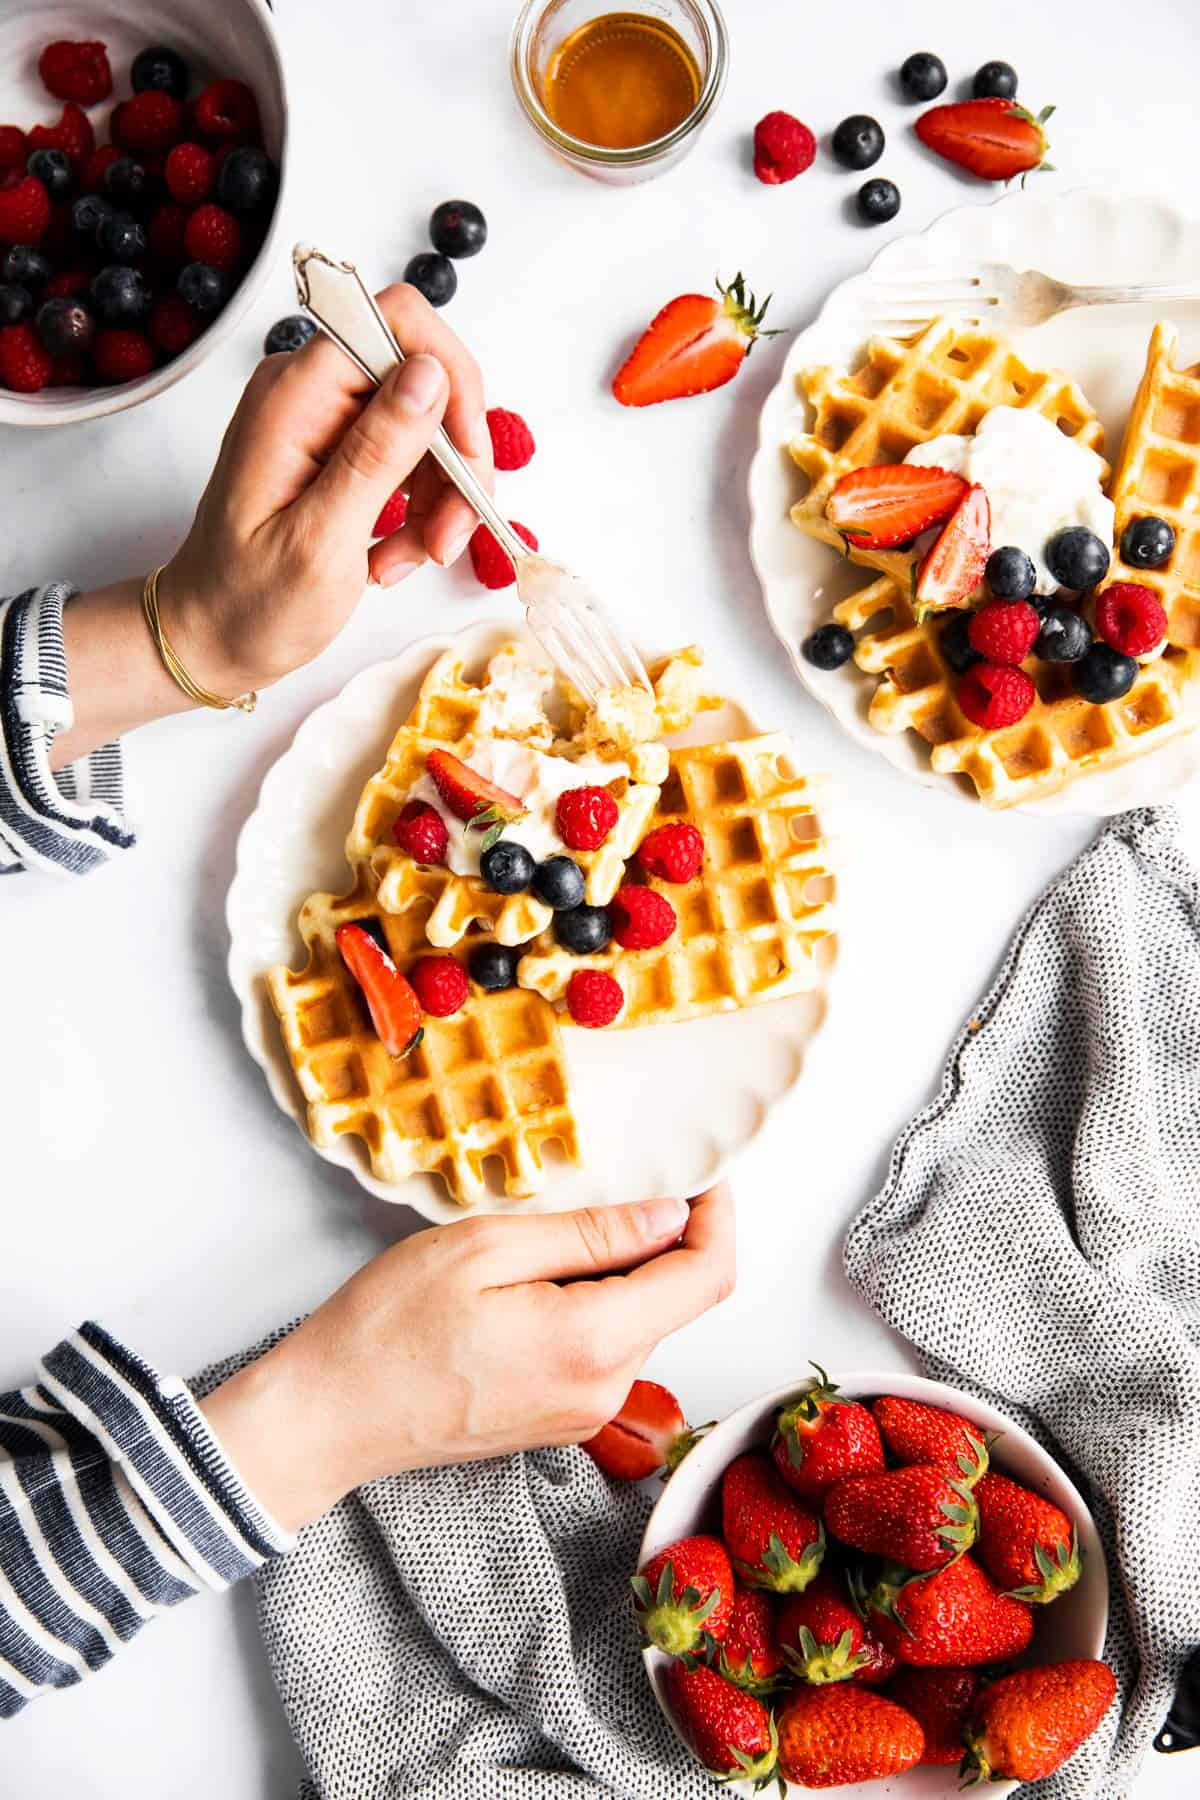 female hands holding plate with waffles and berries